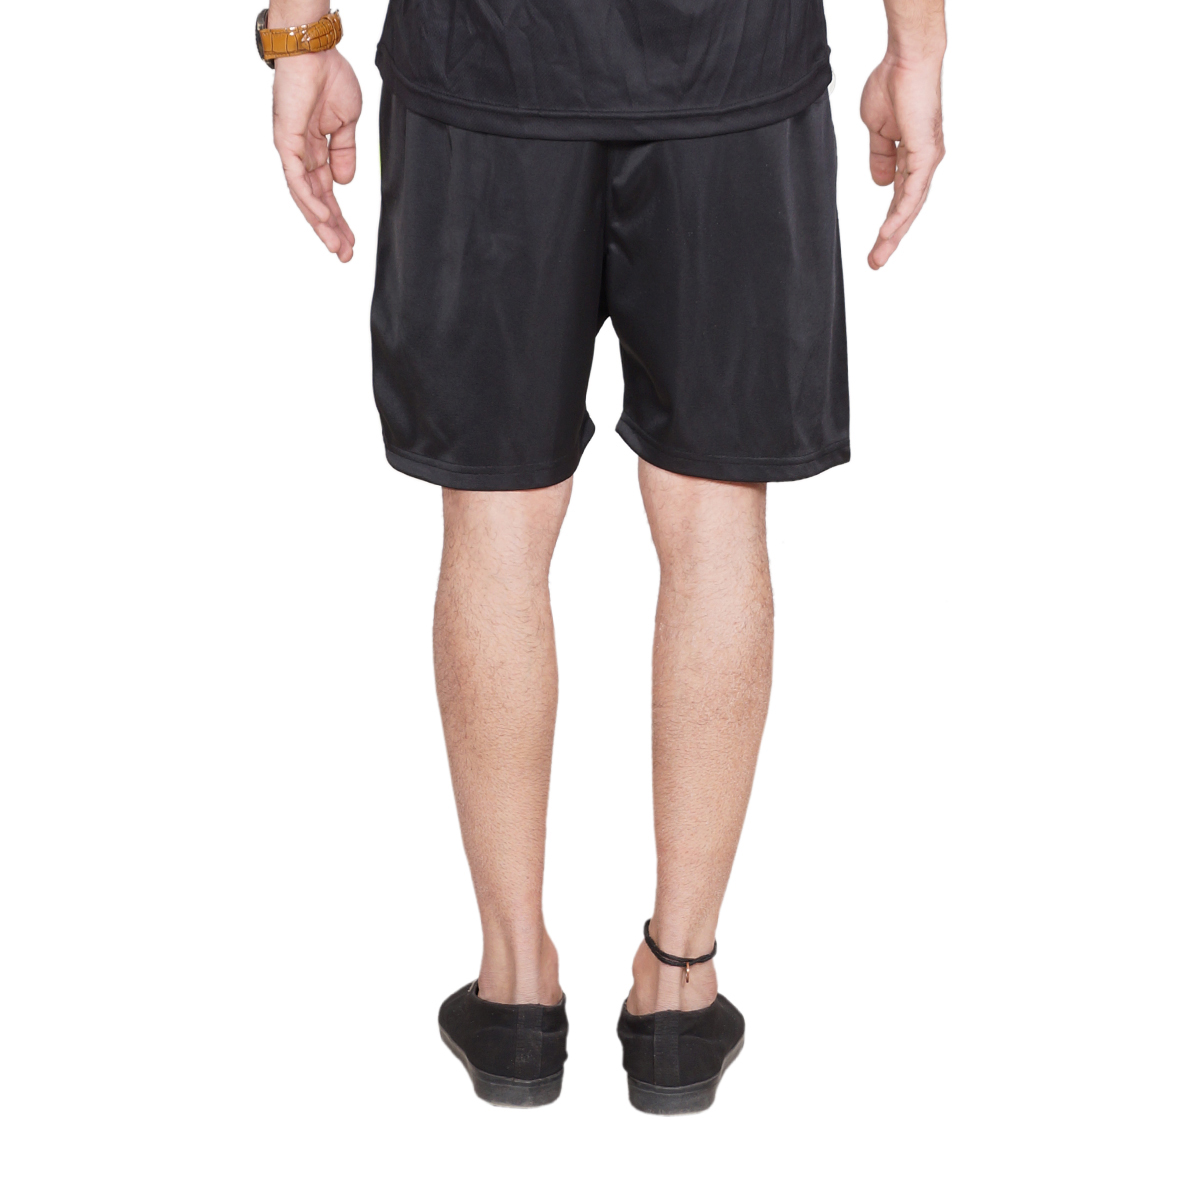 Soccer Shorts Manufacturers, Wholesale Suppliers